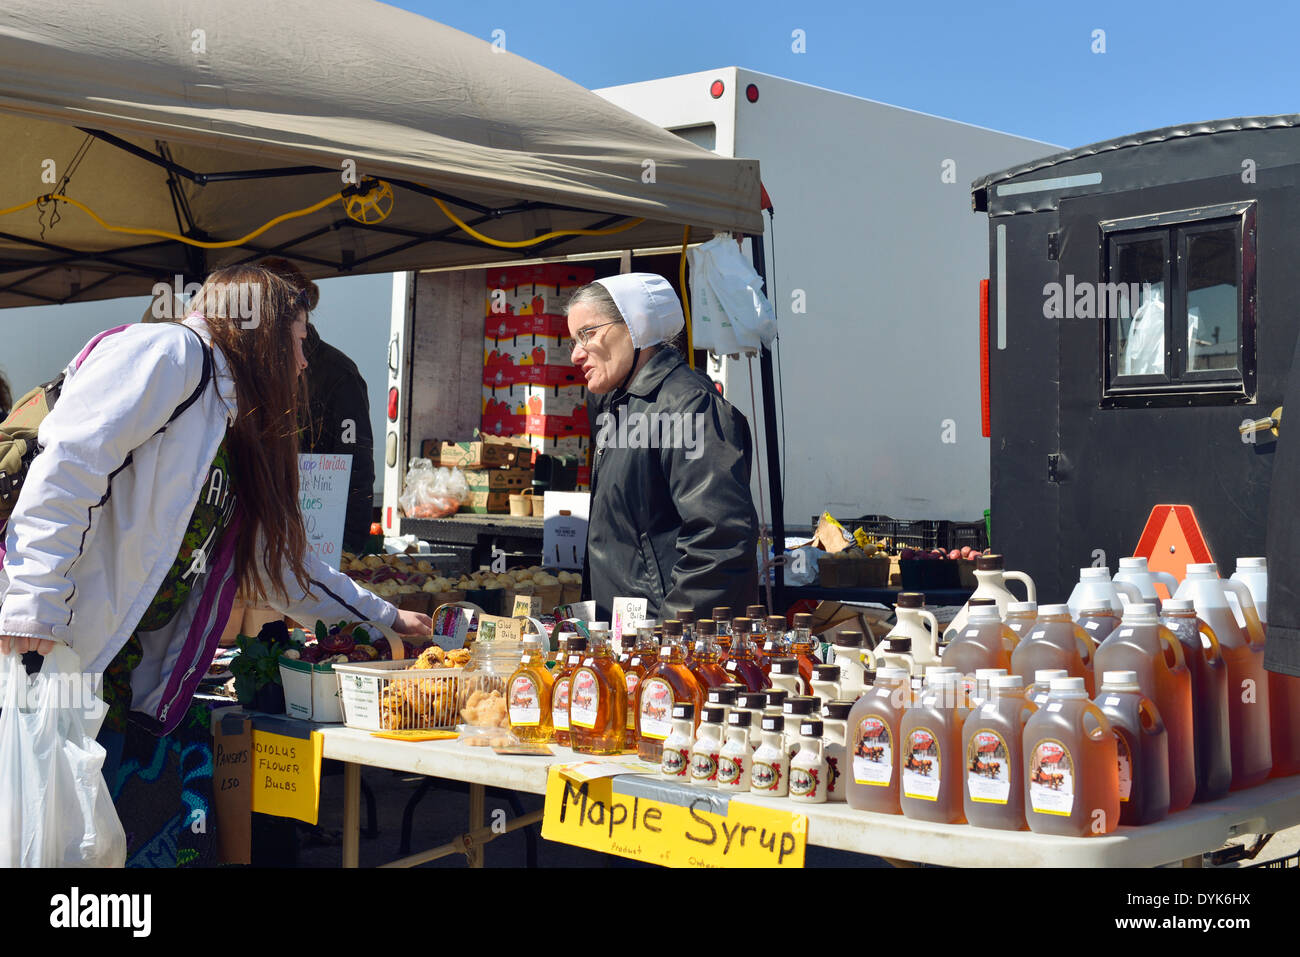 Mennonite Woman selling Maple Syrup, St. Jacobs Farmers Market, Ontario - Stock Image